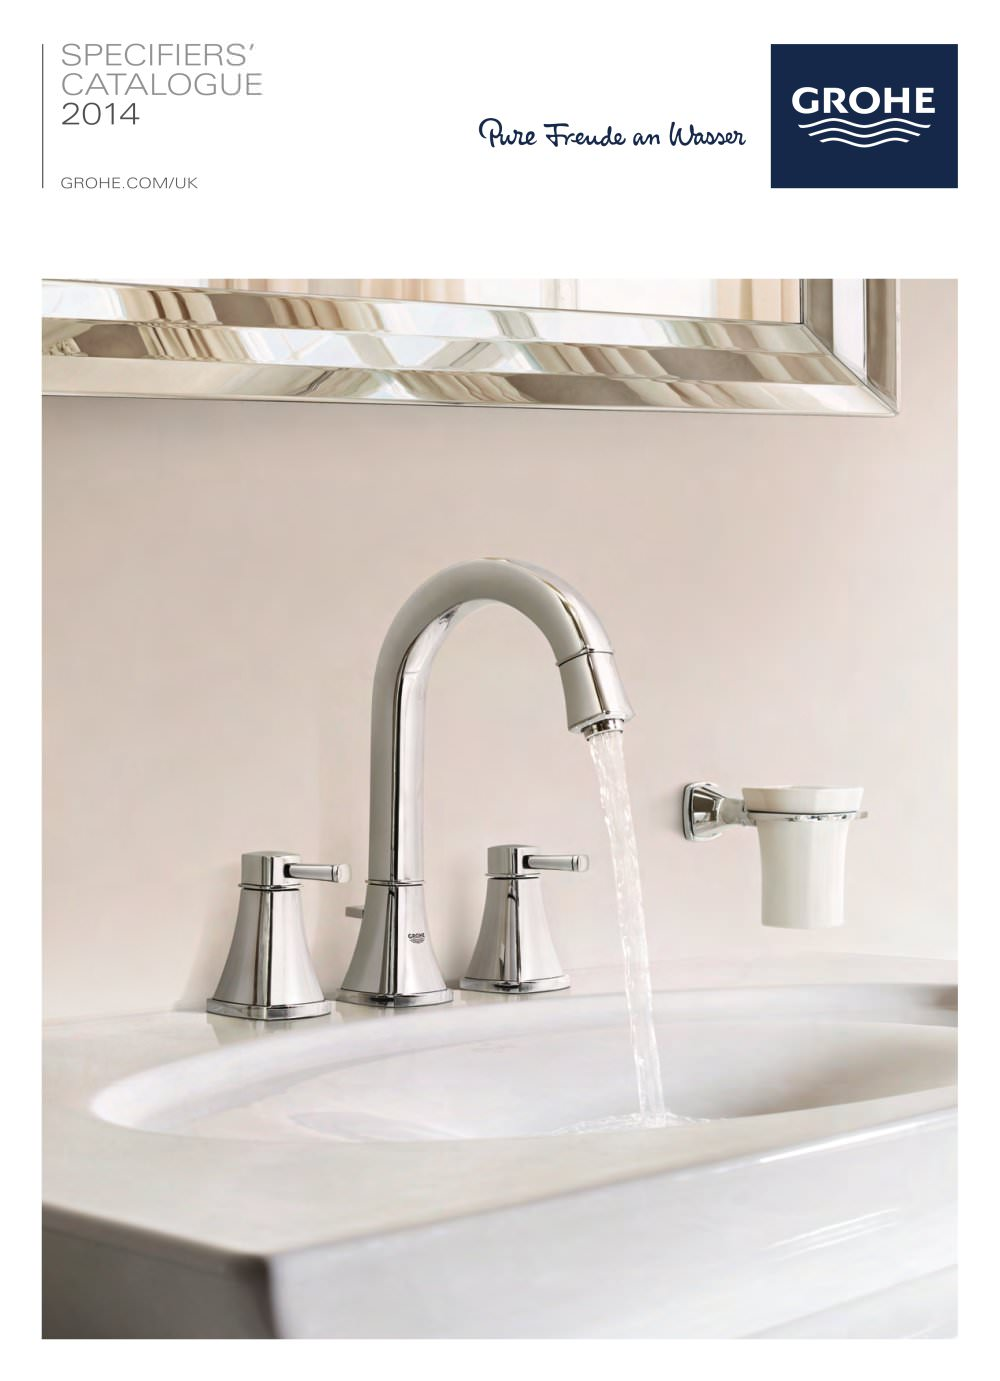 specifiers catalogue 2014 - GROHE - PDF Catalogues | Documentation ...